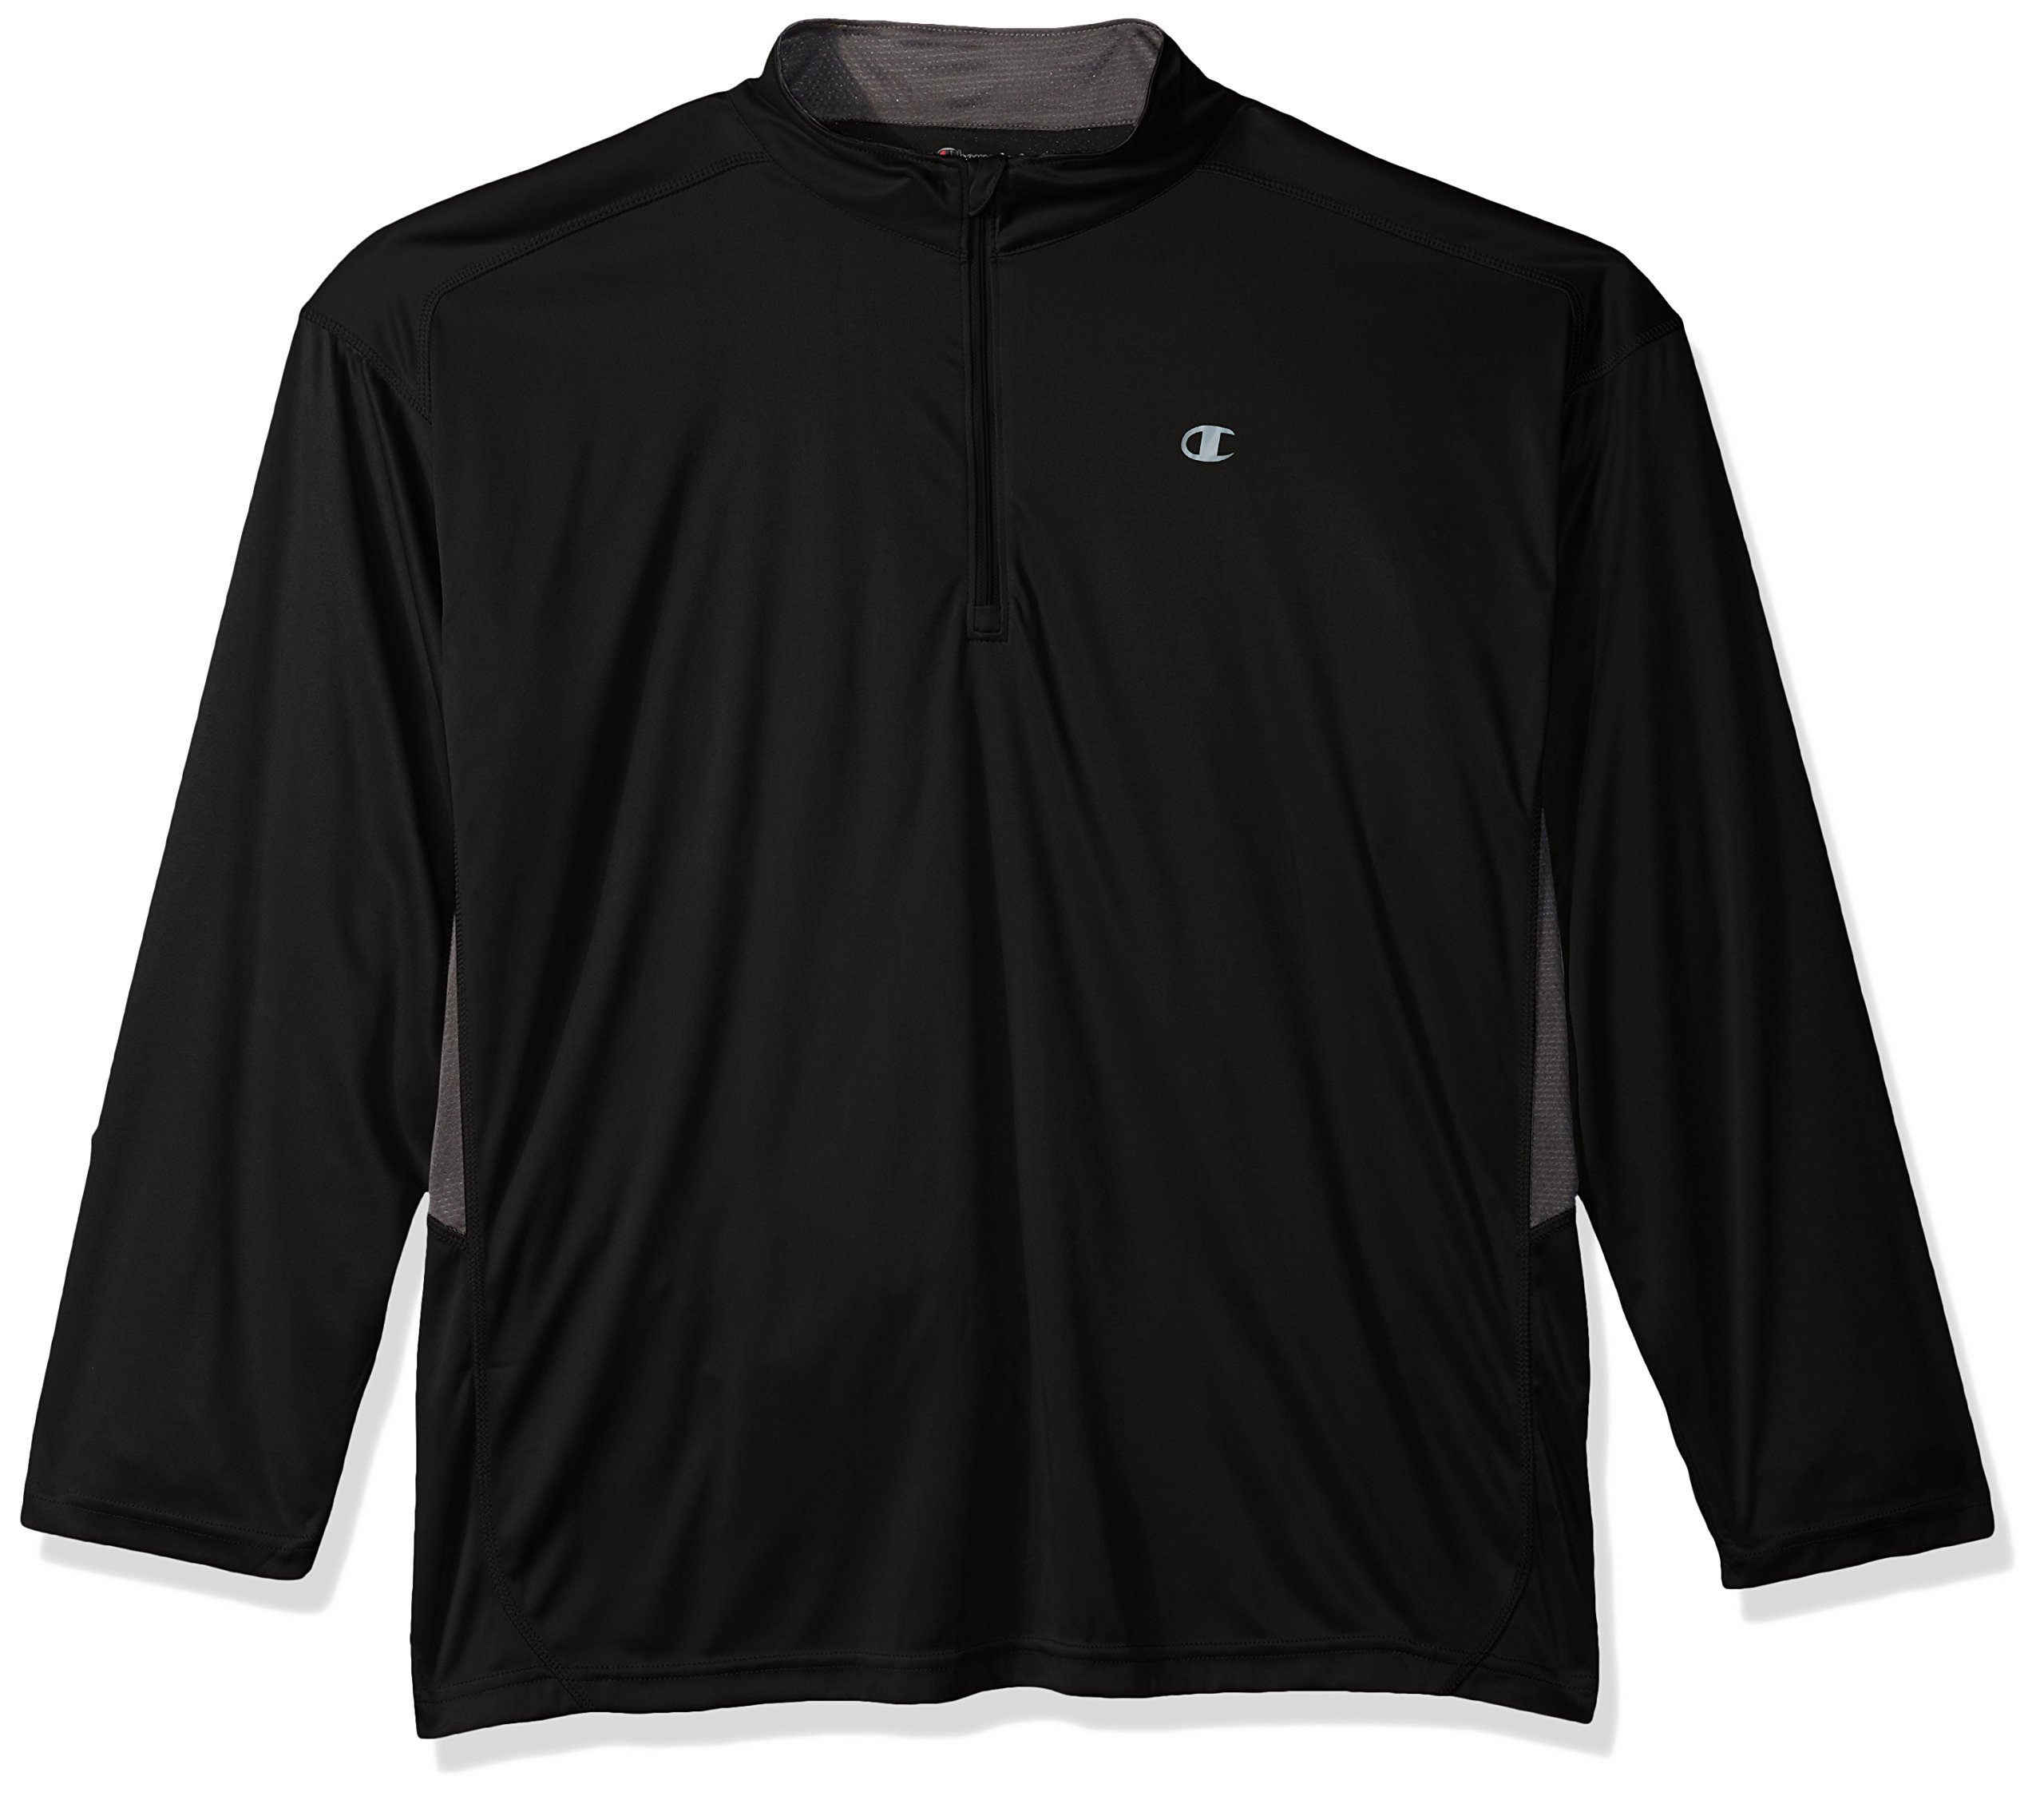 Champion Men's Big and Tall 1/4 Zip Pullover with Lc c, Black/Stealth, 3X by Champion